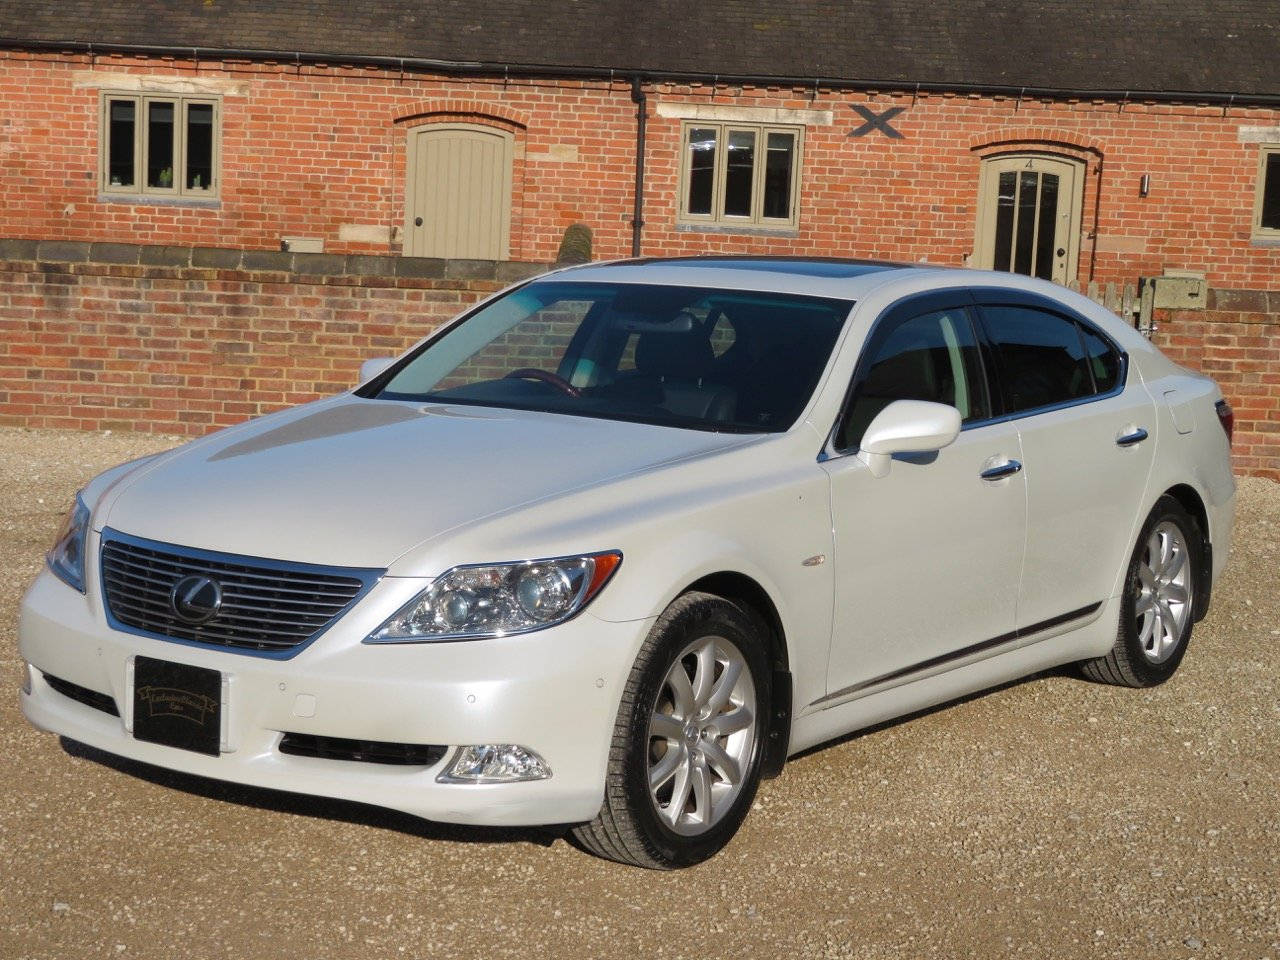 LEXUS LS 460L 2006 7K MILES FROM NEW 1 OWNER FROM NEW For Sale (picture 6 of 6)